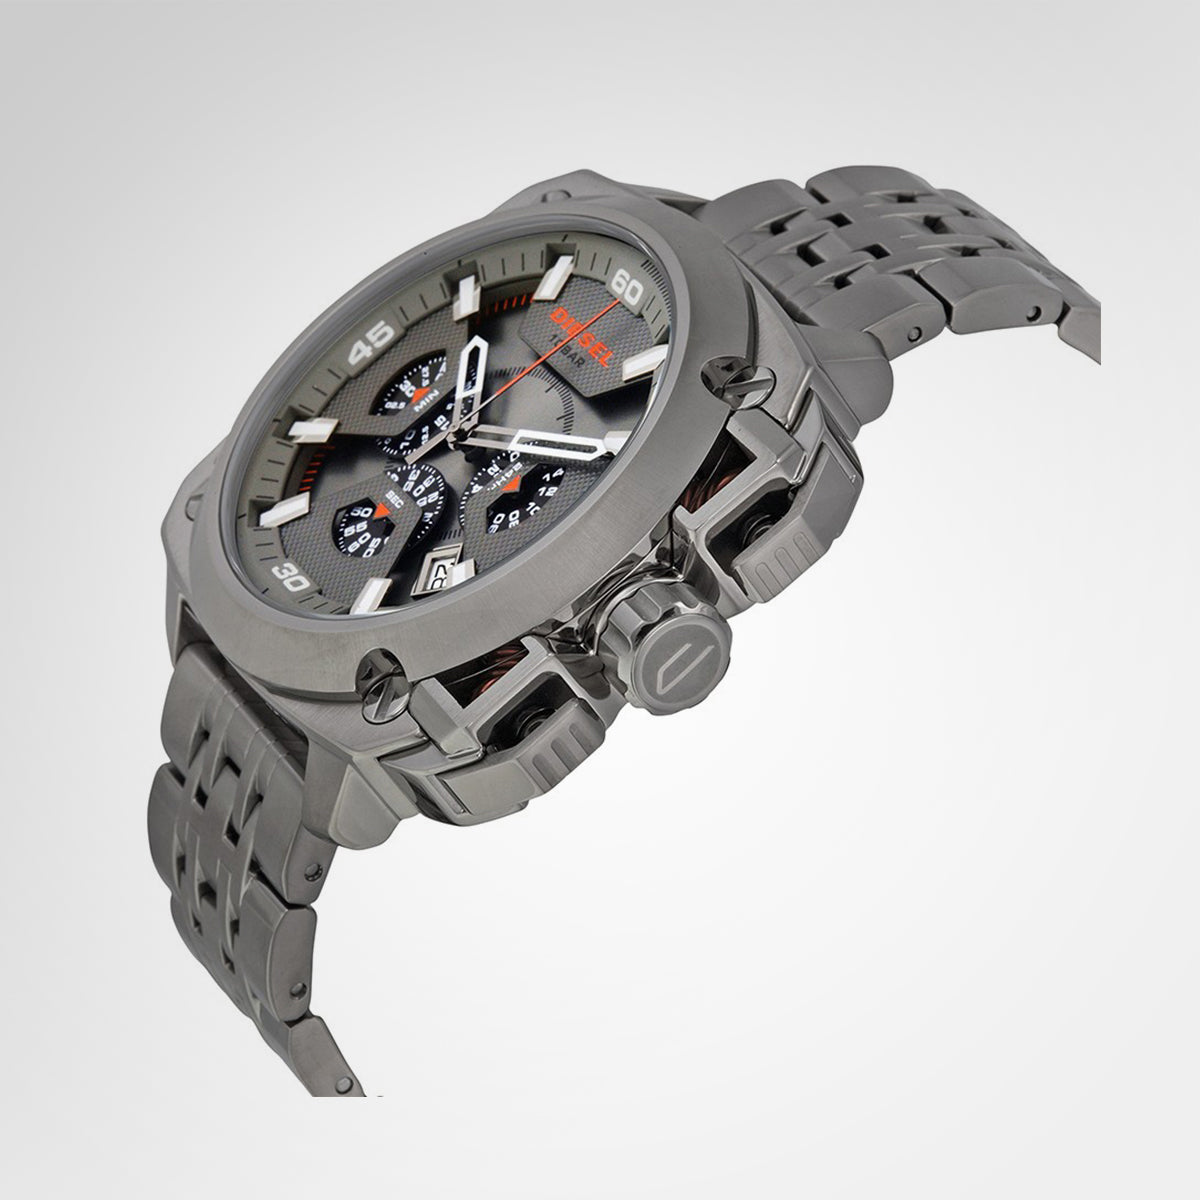 Diesel DZ7344 BAMF Gunmetal Men's Chronograph Watch